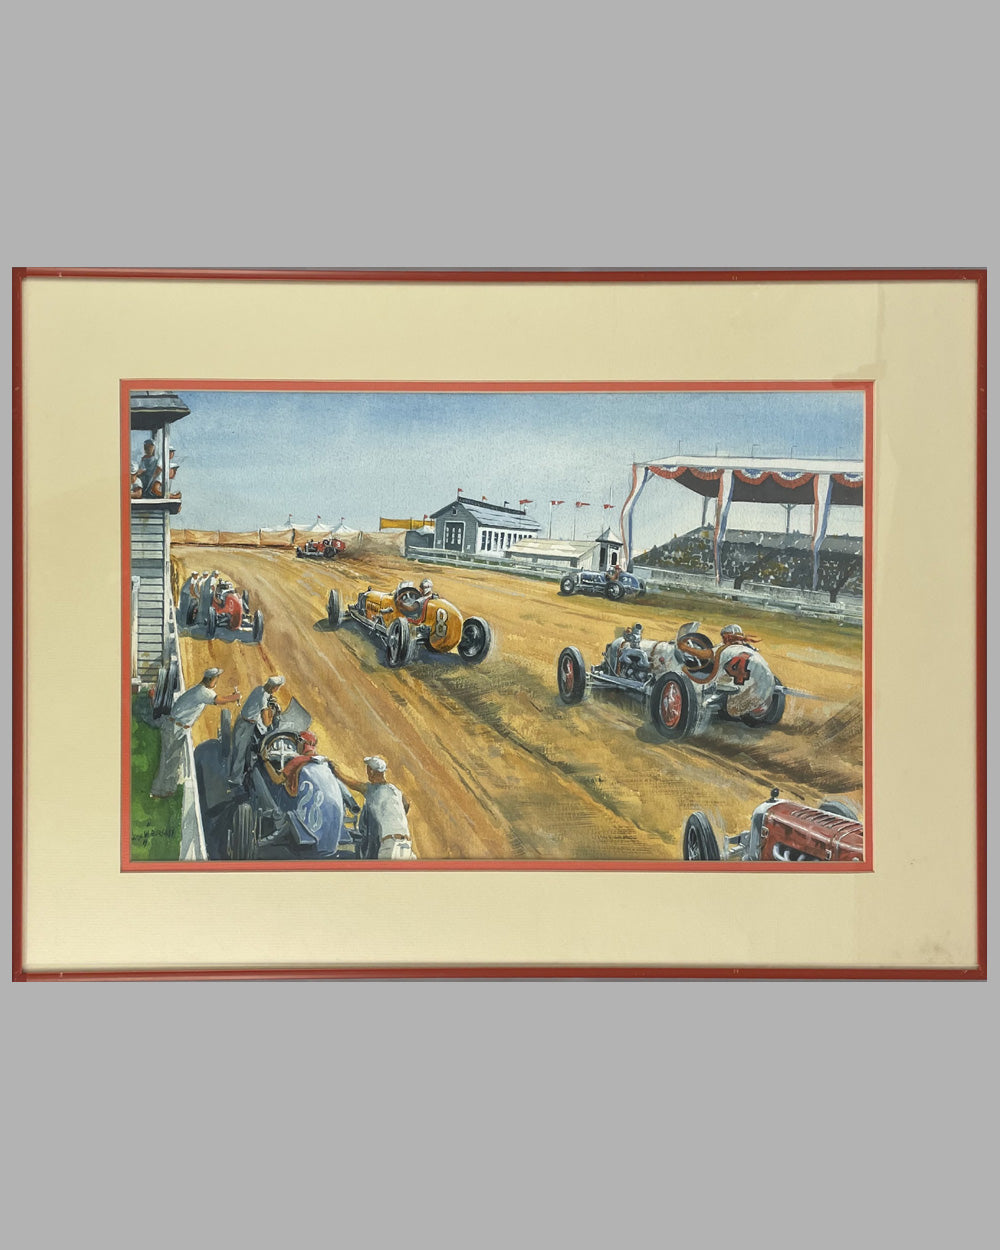 """At the Races"" original gouache painting by John Burgess"